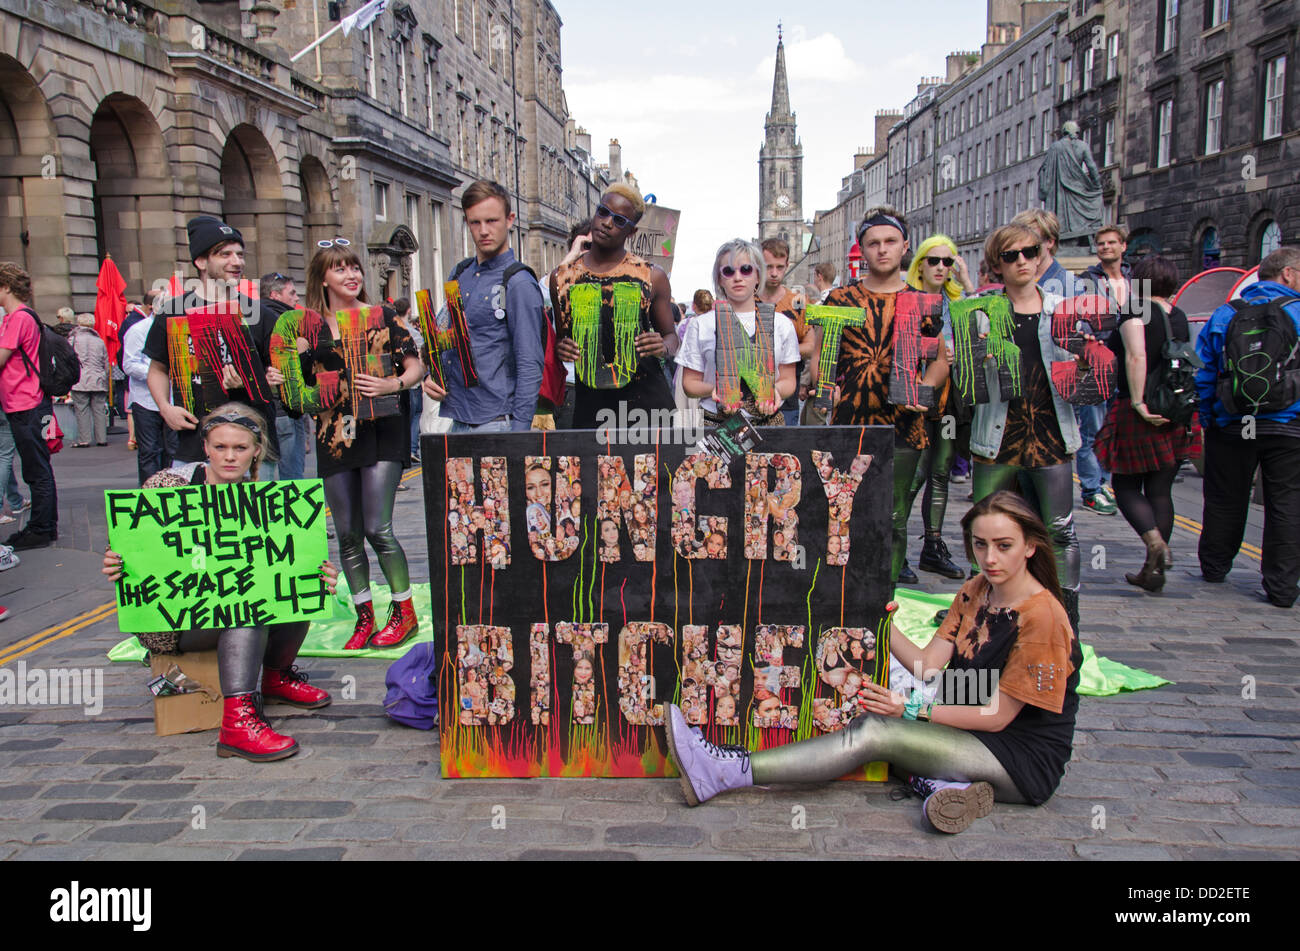 Performers promoting their play 'Facehunters' on the High Street in Edinburgh. - Stock Image